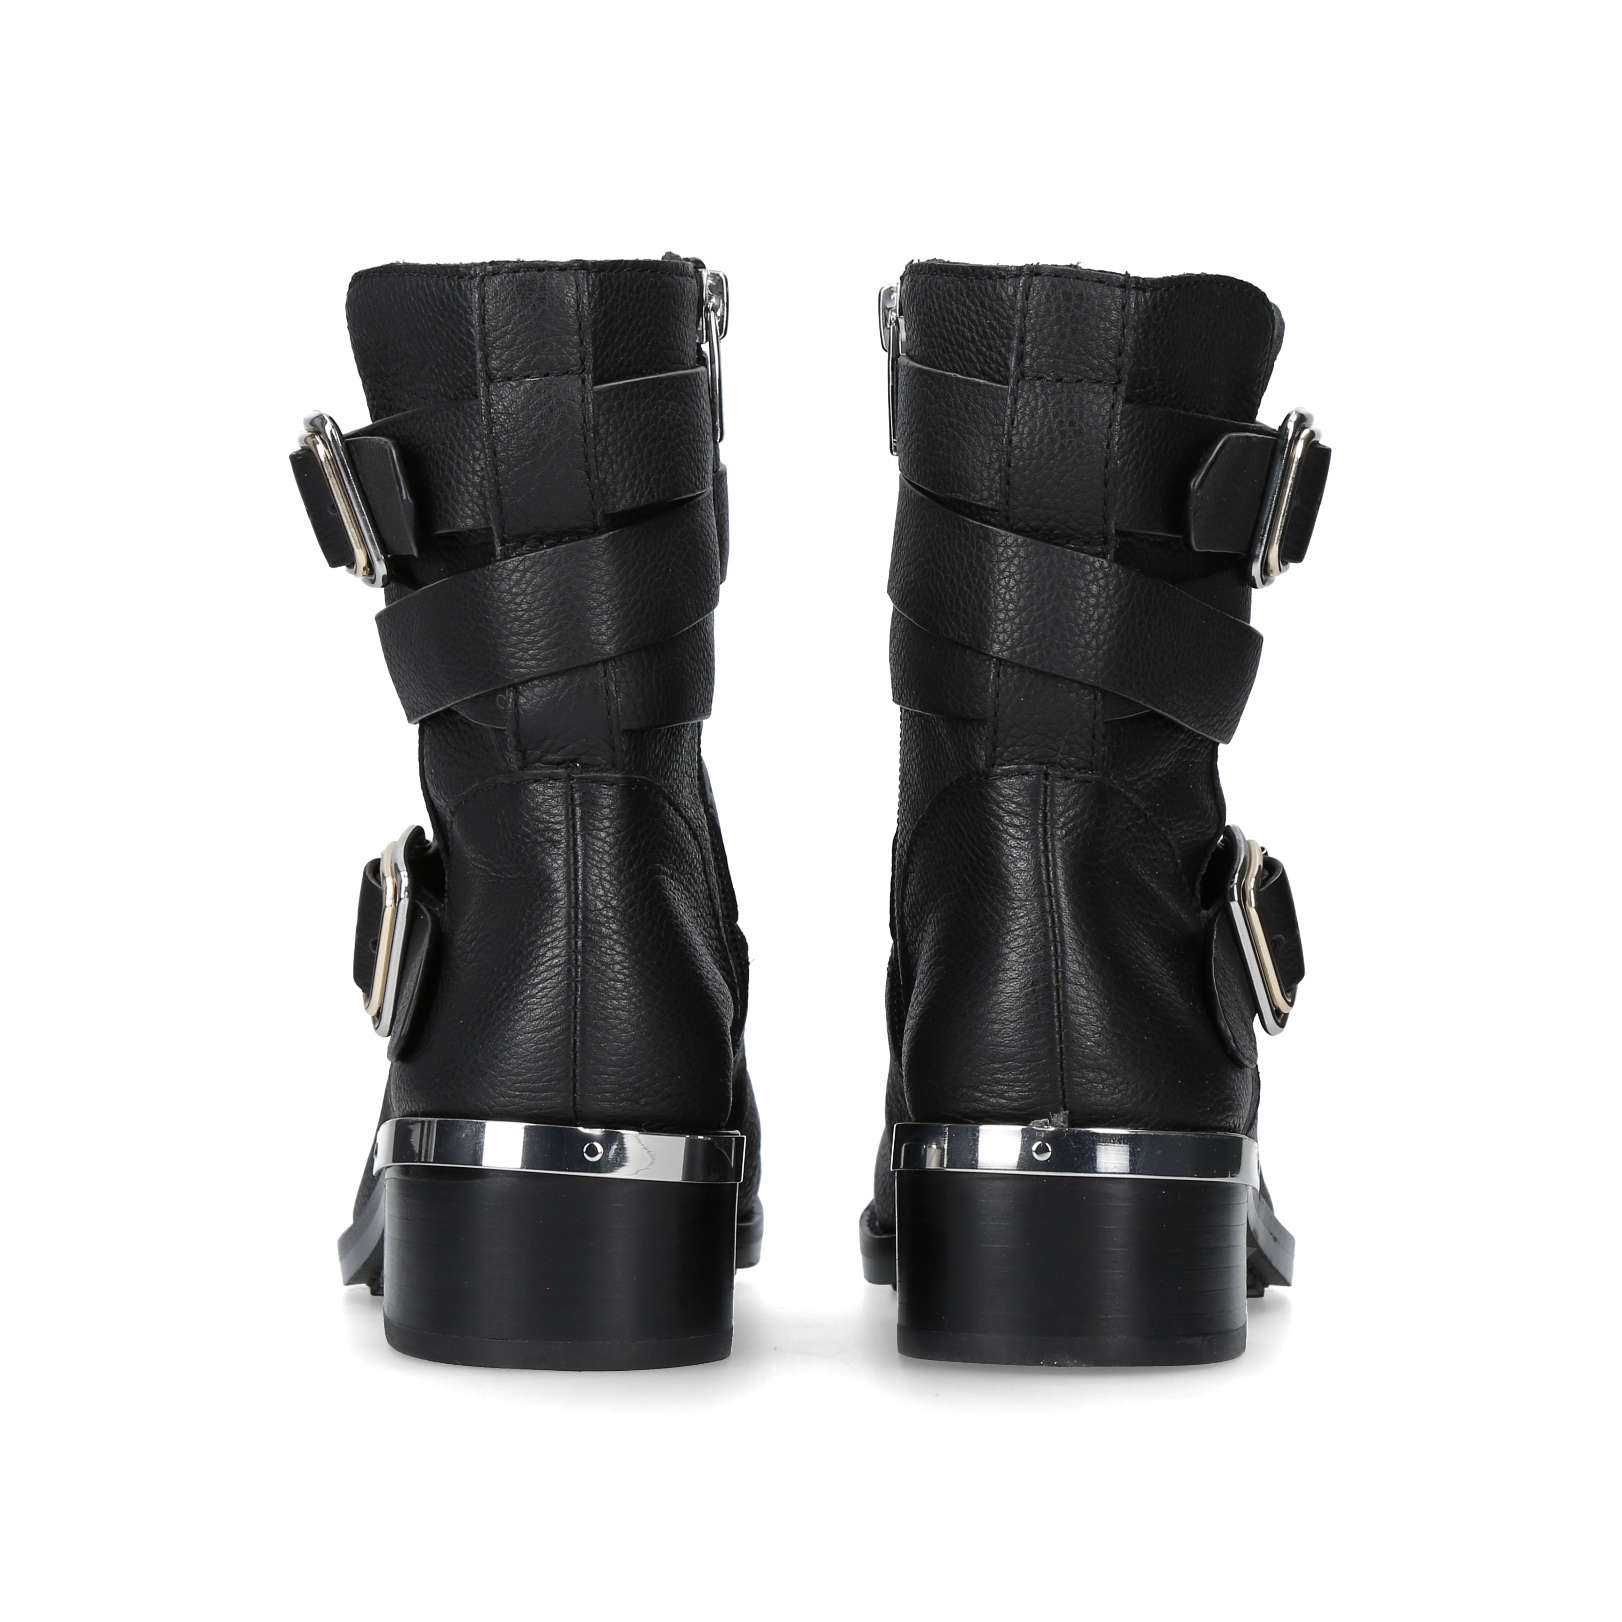 Webey Vince Camuto Boots